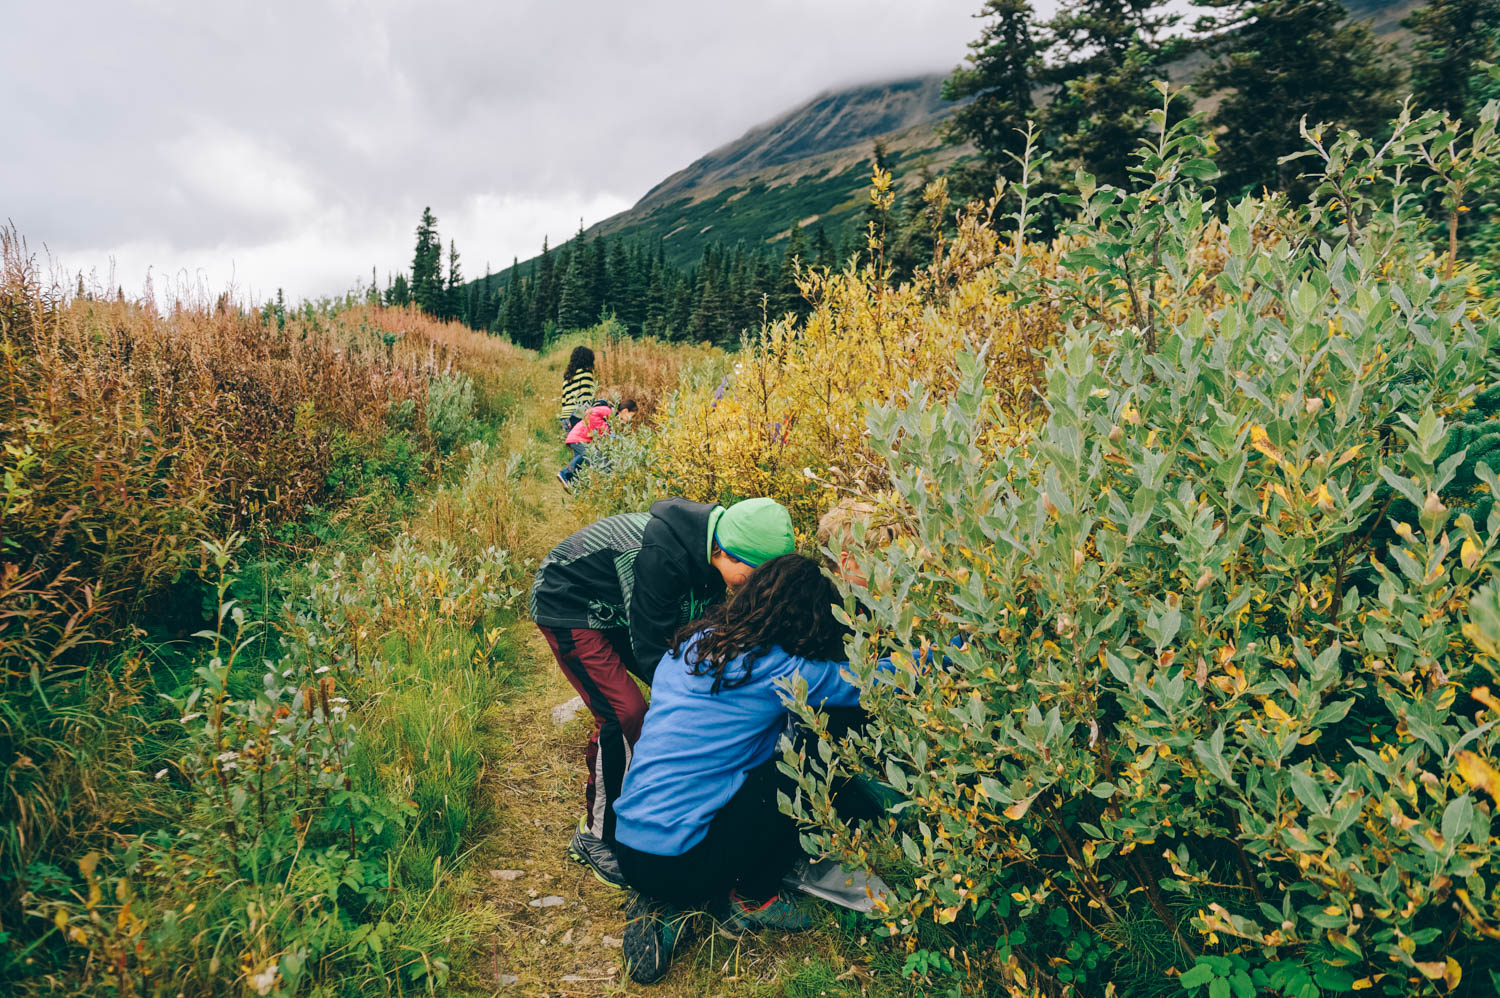 Picking blueberries in Fraser, BC (45 min from Carcross towards Alaska).